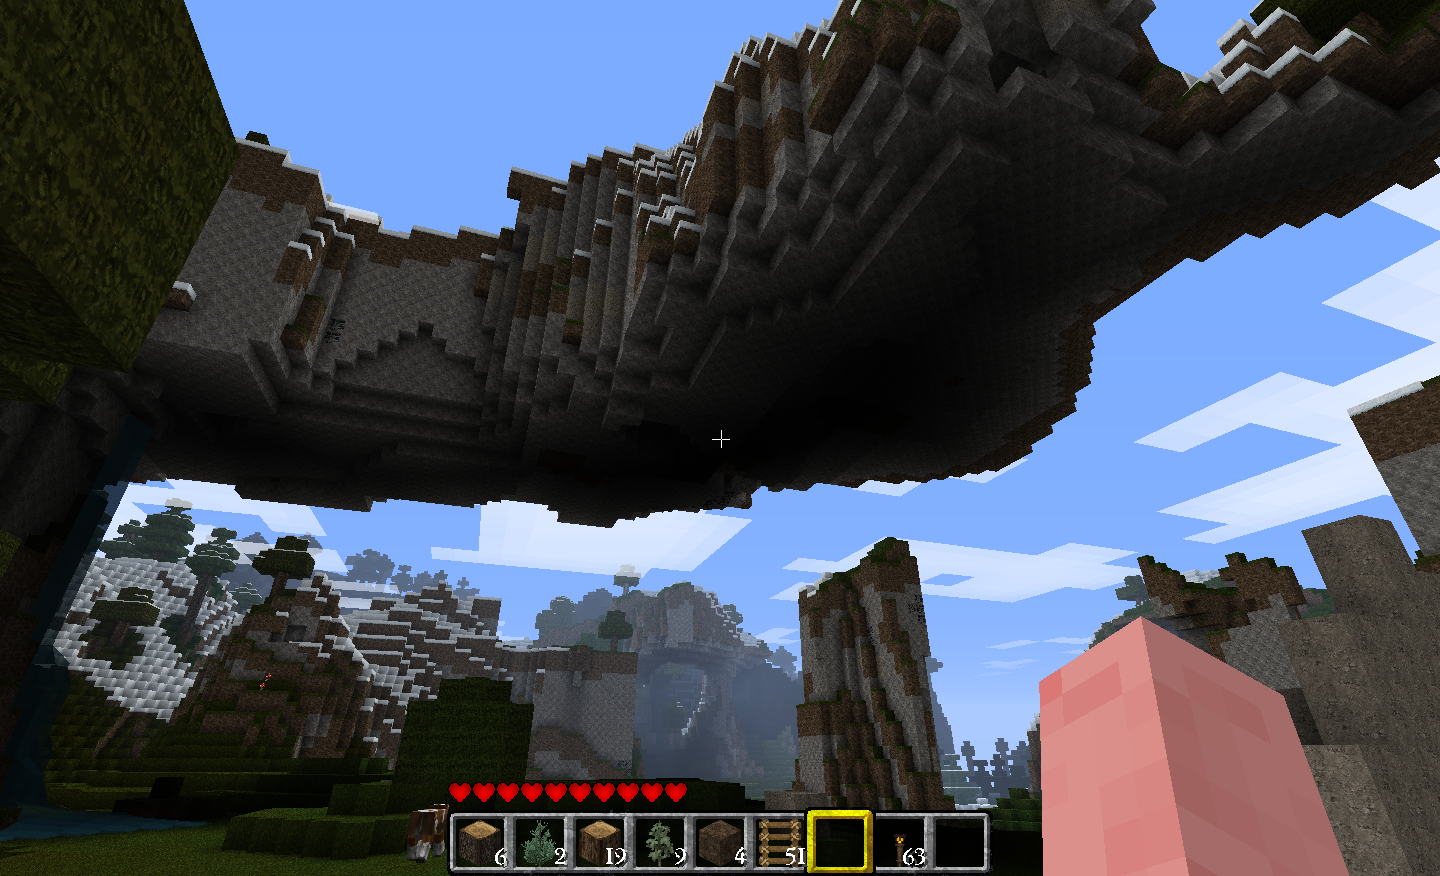 Minecraft Pig Cool Overhang Seed